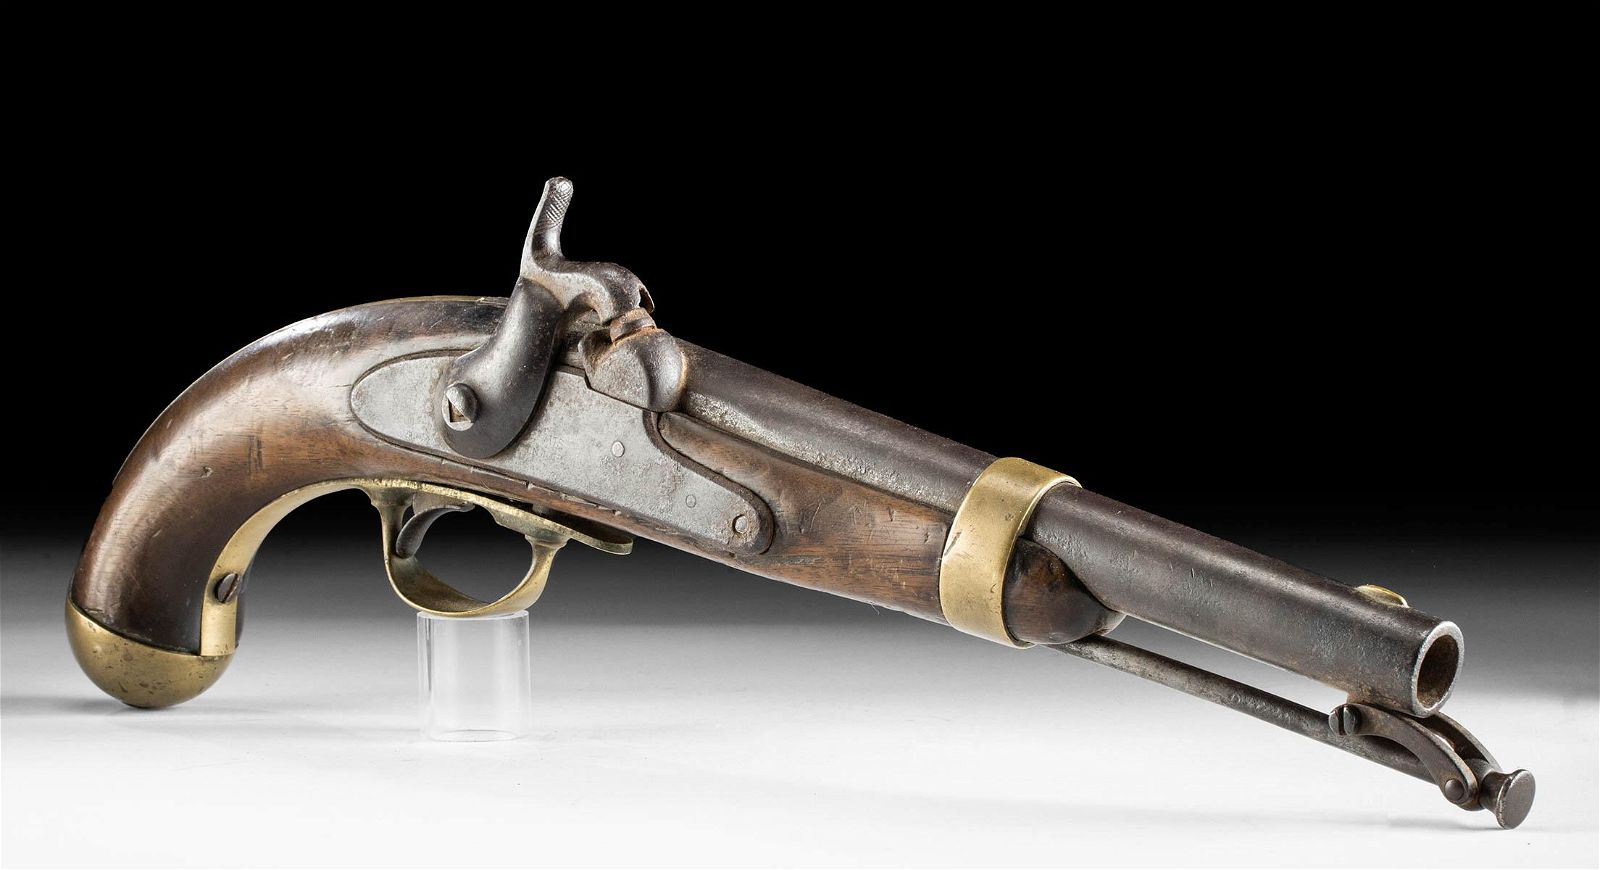 American Model 1842 Percussion Pistol, ca. 1853